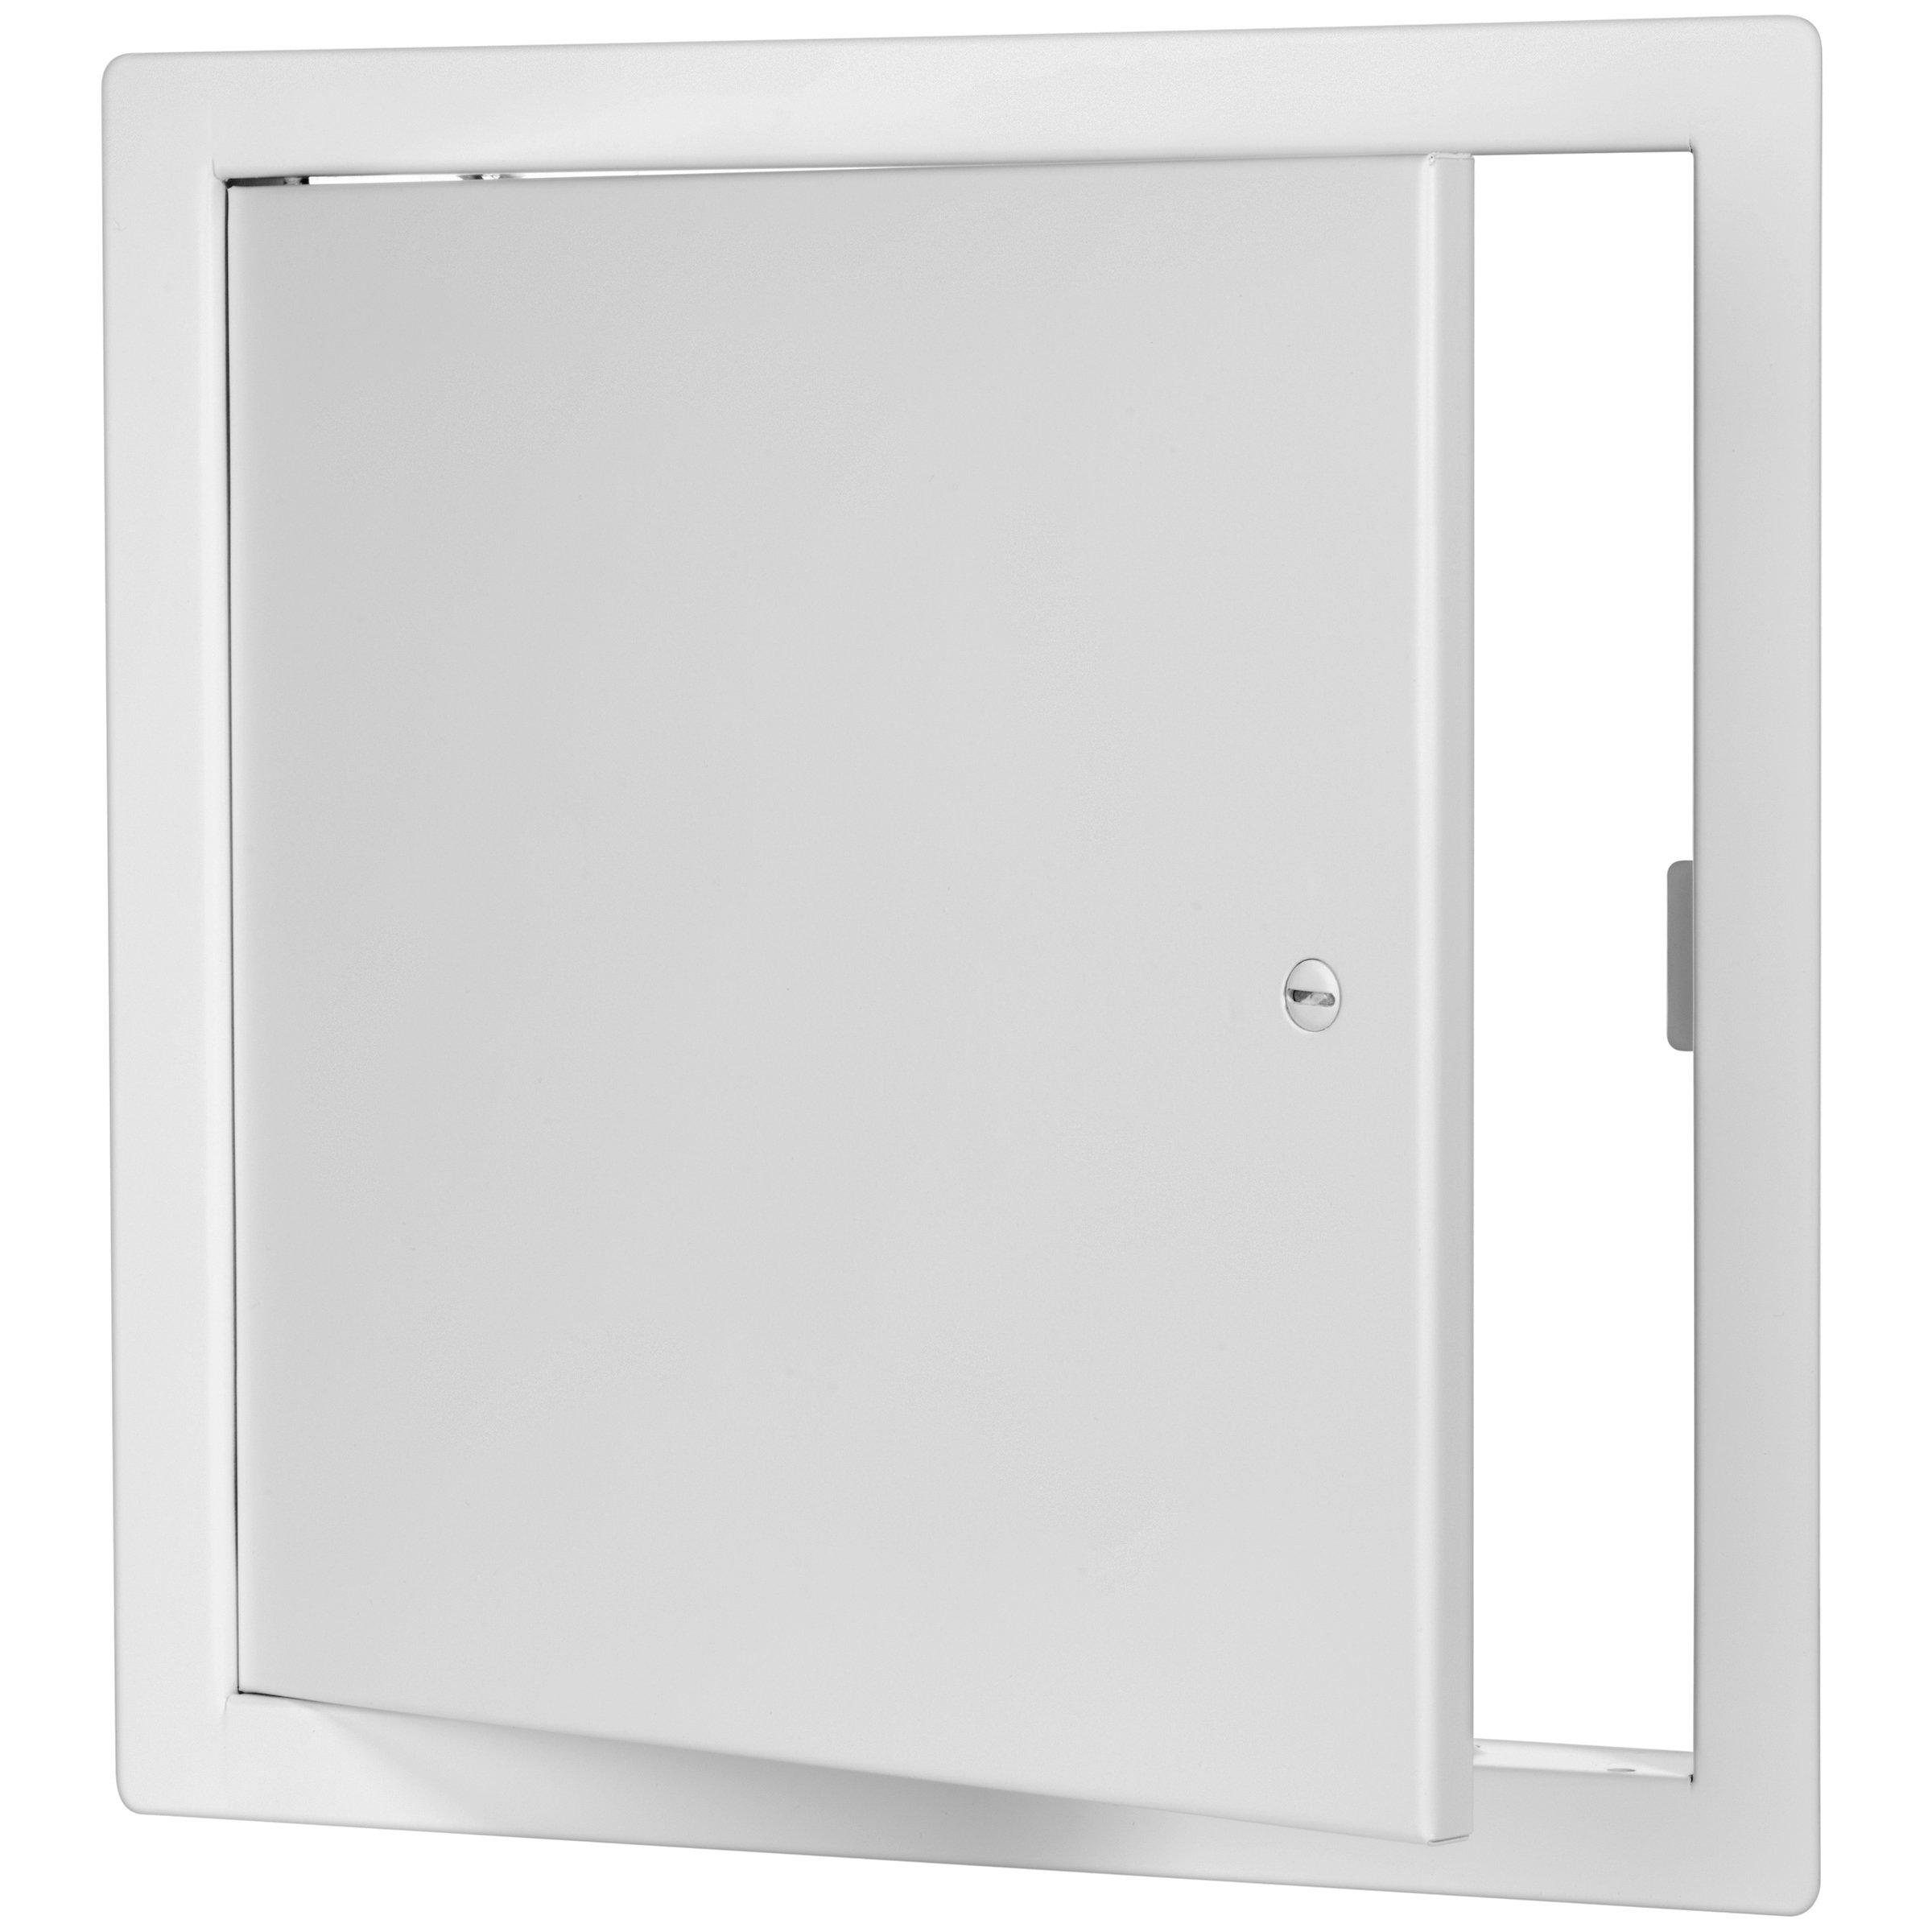 Premier 2002 Series Steel Access Door, 16 x 16 Flush Universal Mount, White (Screwdriver Latch) by Premier Access Doors